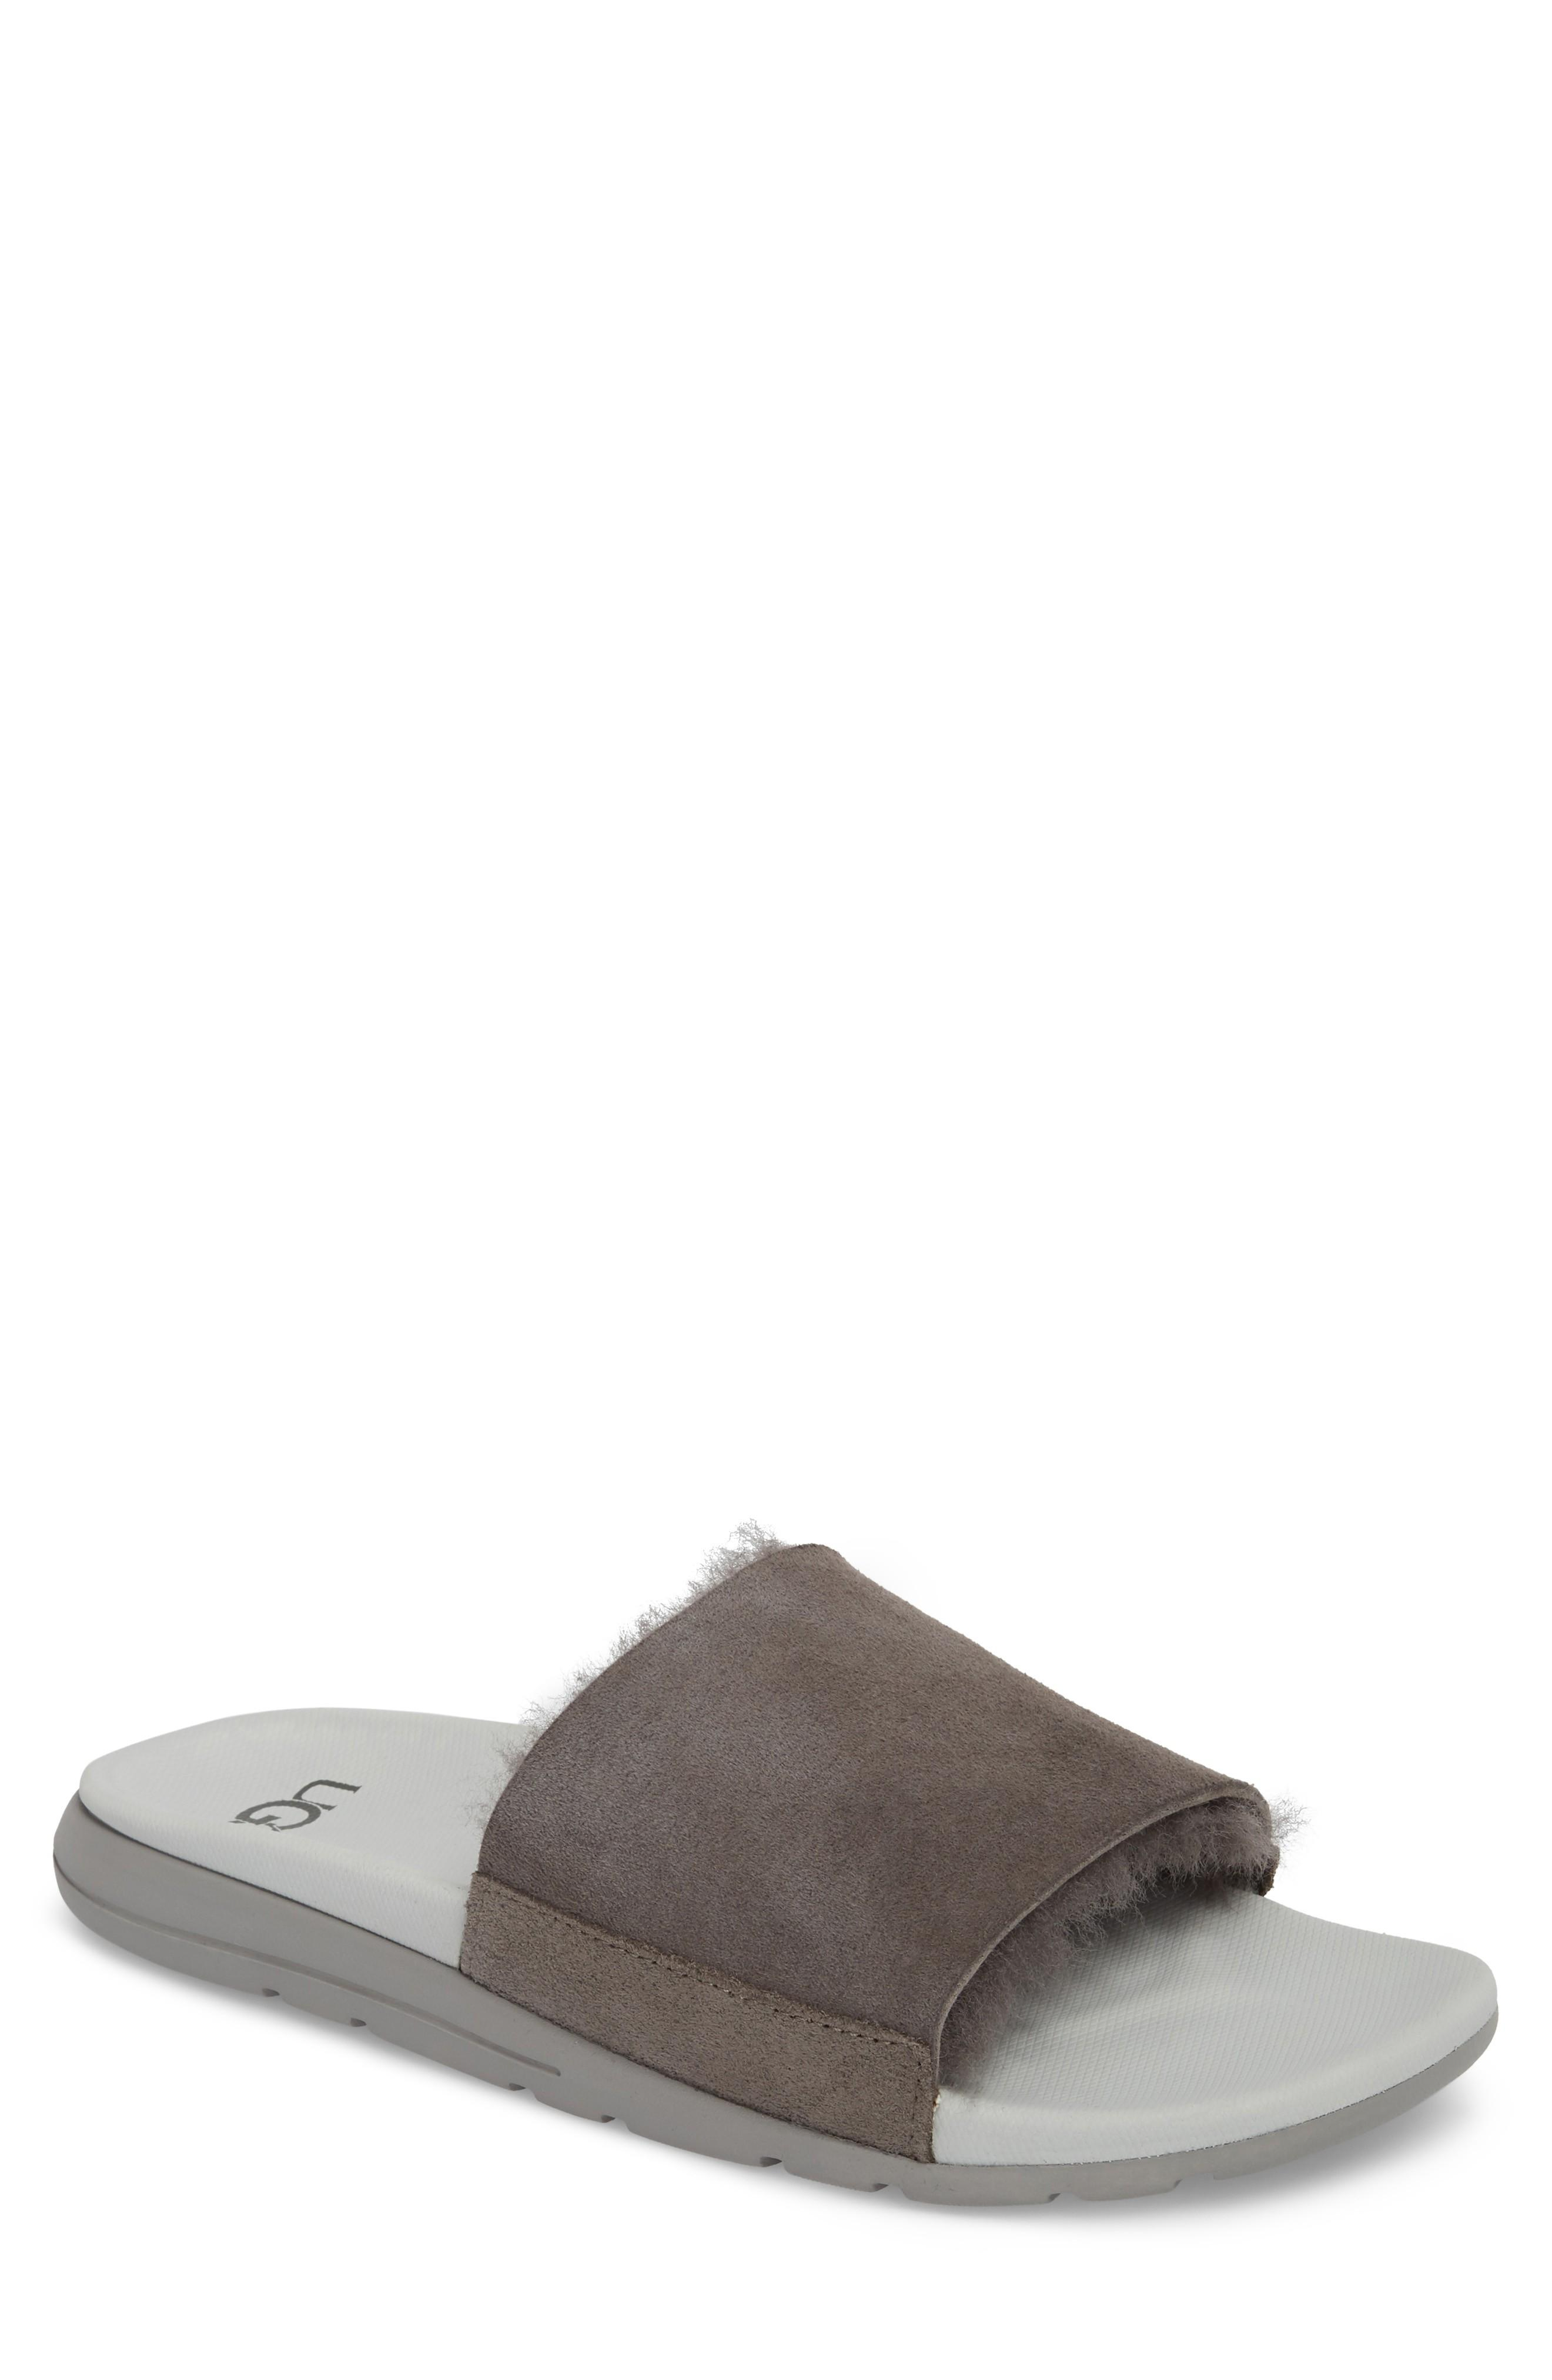 ad9fbcc5d11 Ugg Xavier Tf Genuine Shearling Slide Sandal in Charcoal Leather